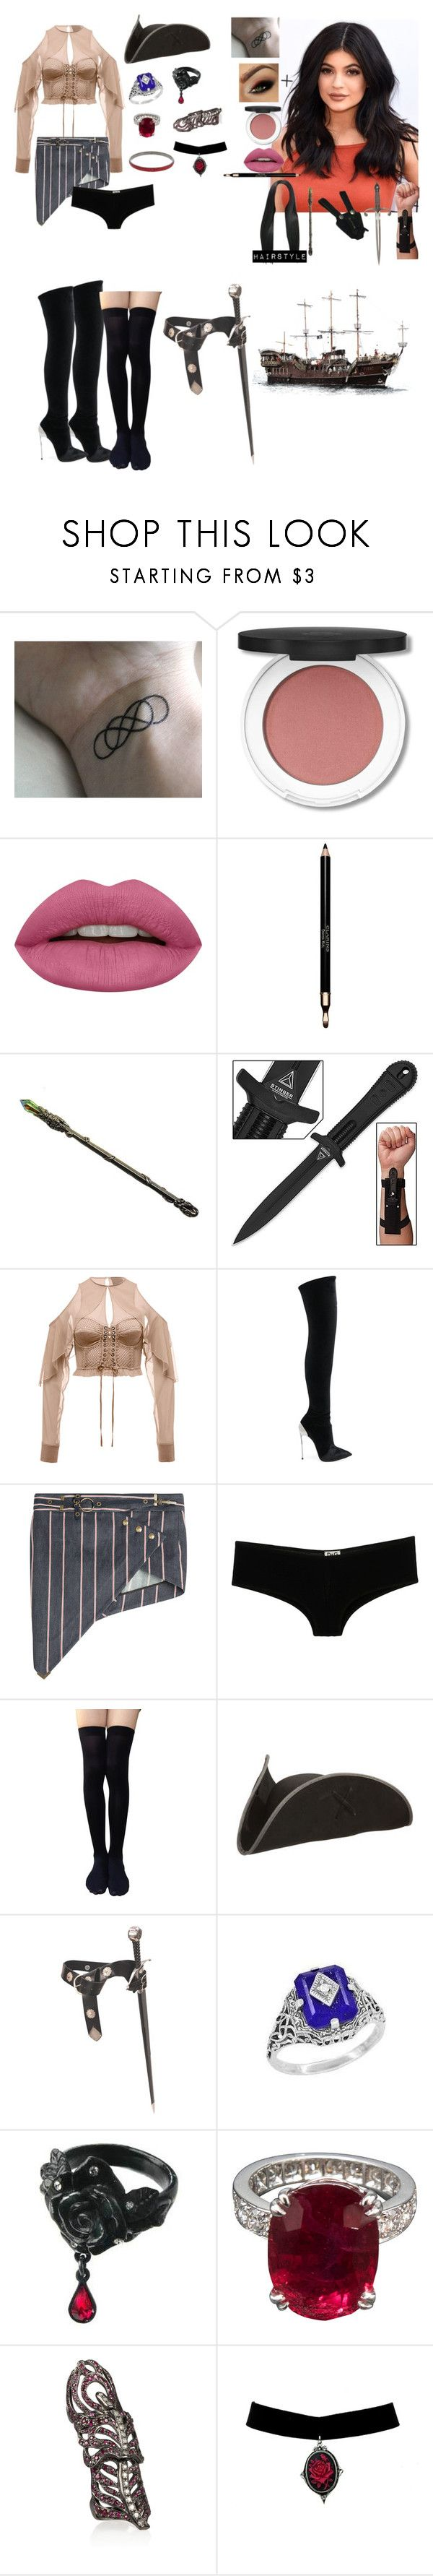 """Spencer Returns to MeadowCliff to finish her Training and continue her job as 'The Scarlet Pirate'"" by andyarana ❤ liked on Polyvore featuring MANGO, Huda Beauty, Clarins, Puma, Casadei, Anthony Vaccarello, D&G, Lazuli, Loree Rodkin and Bensimon"